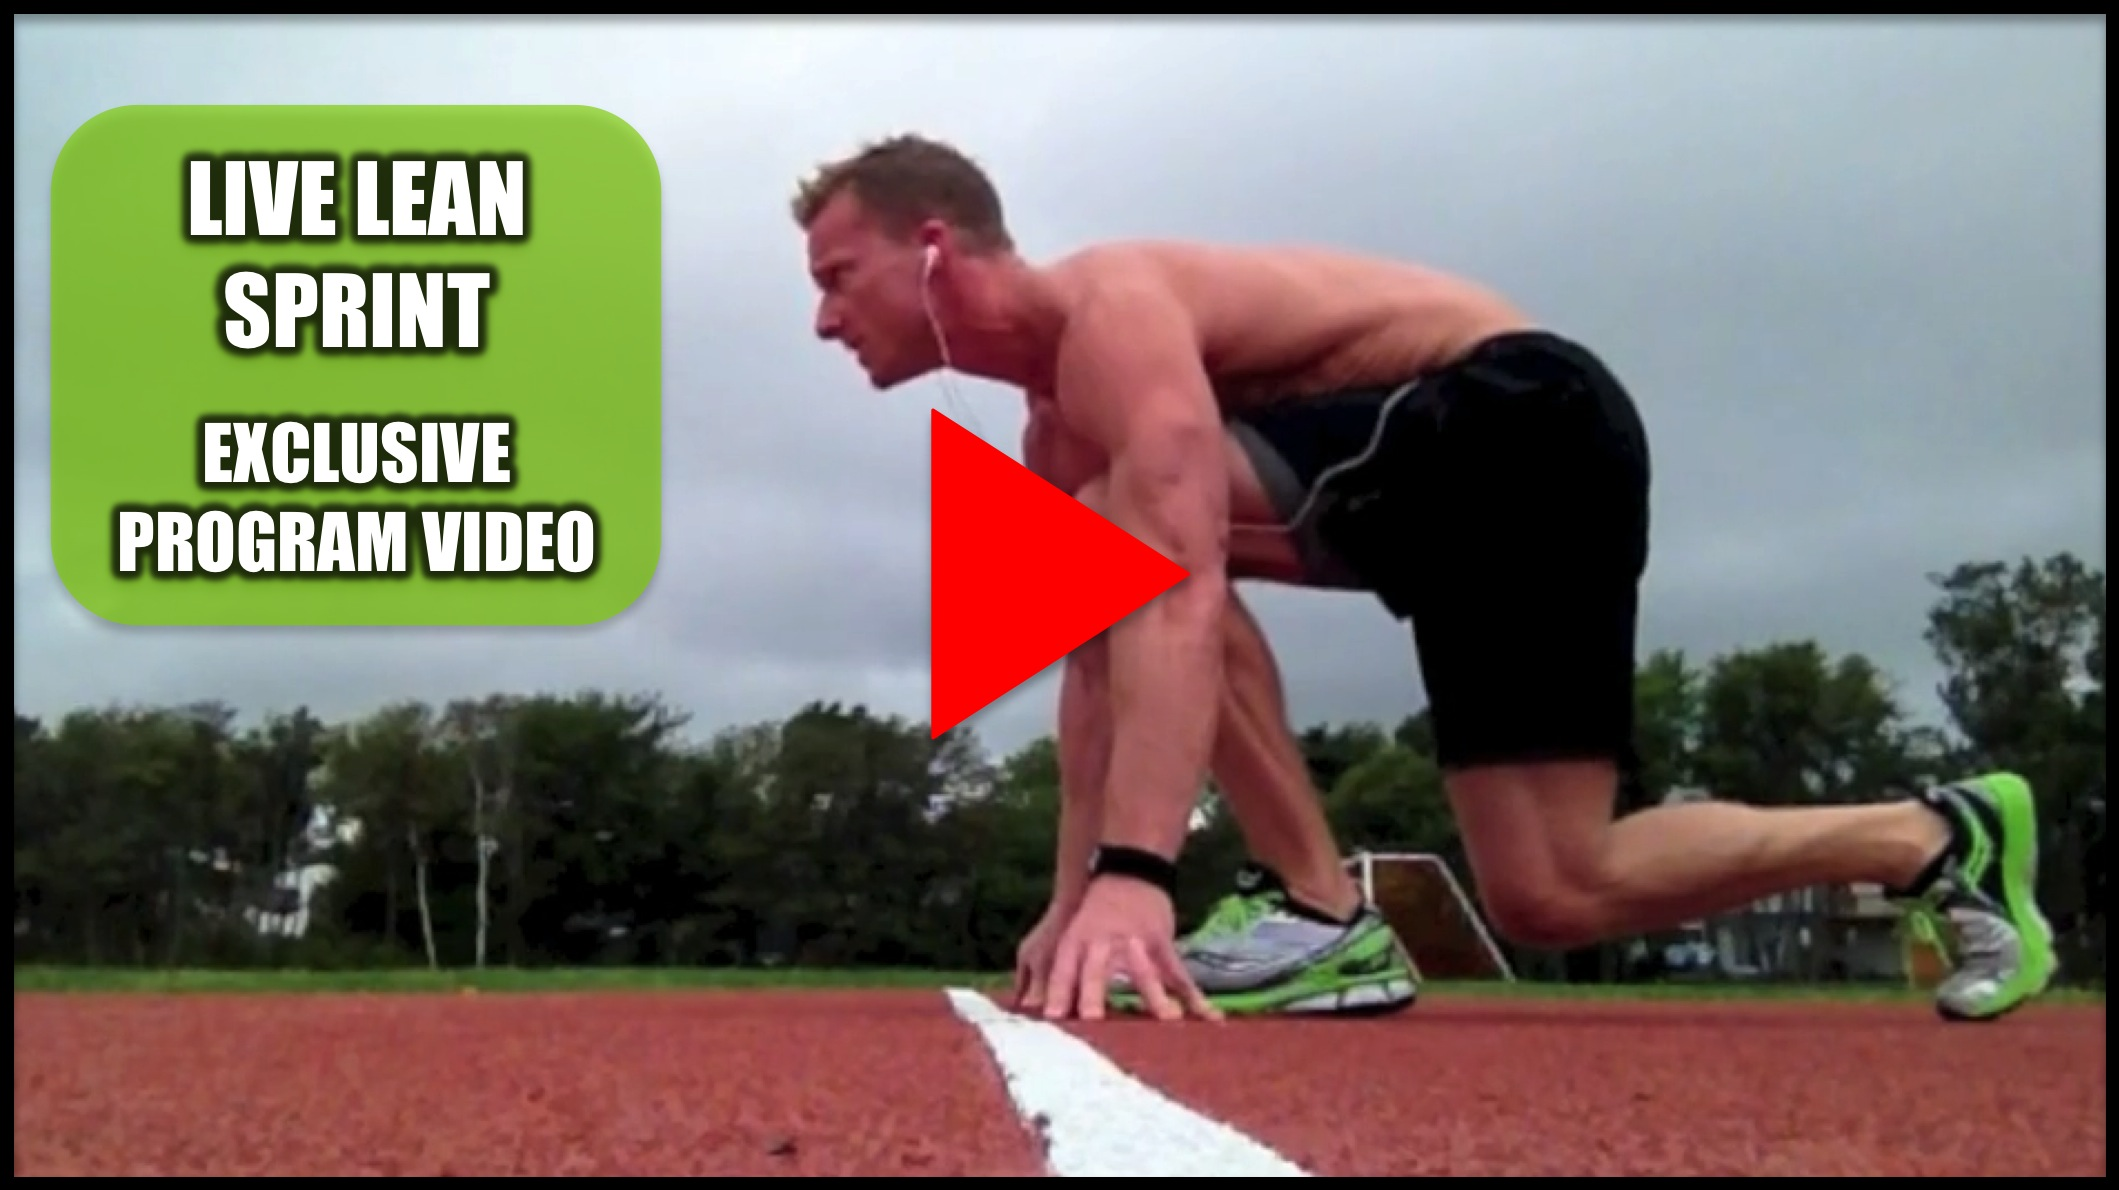 Live Lean Sprint Video Cover